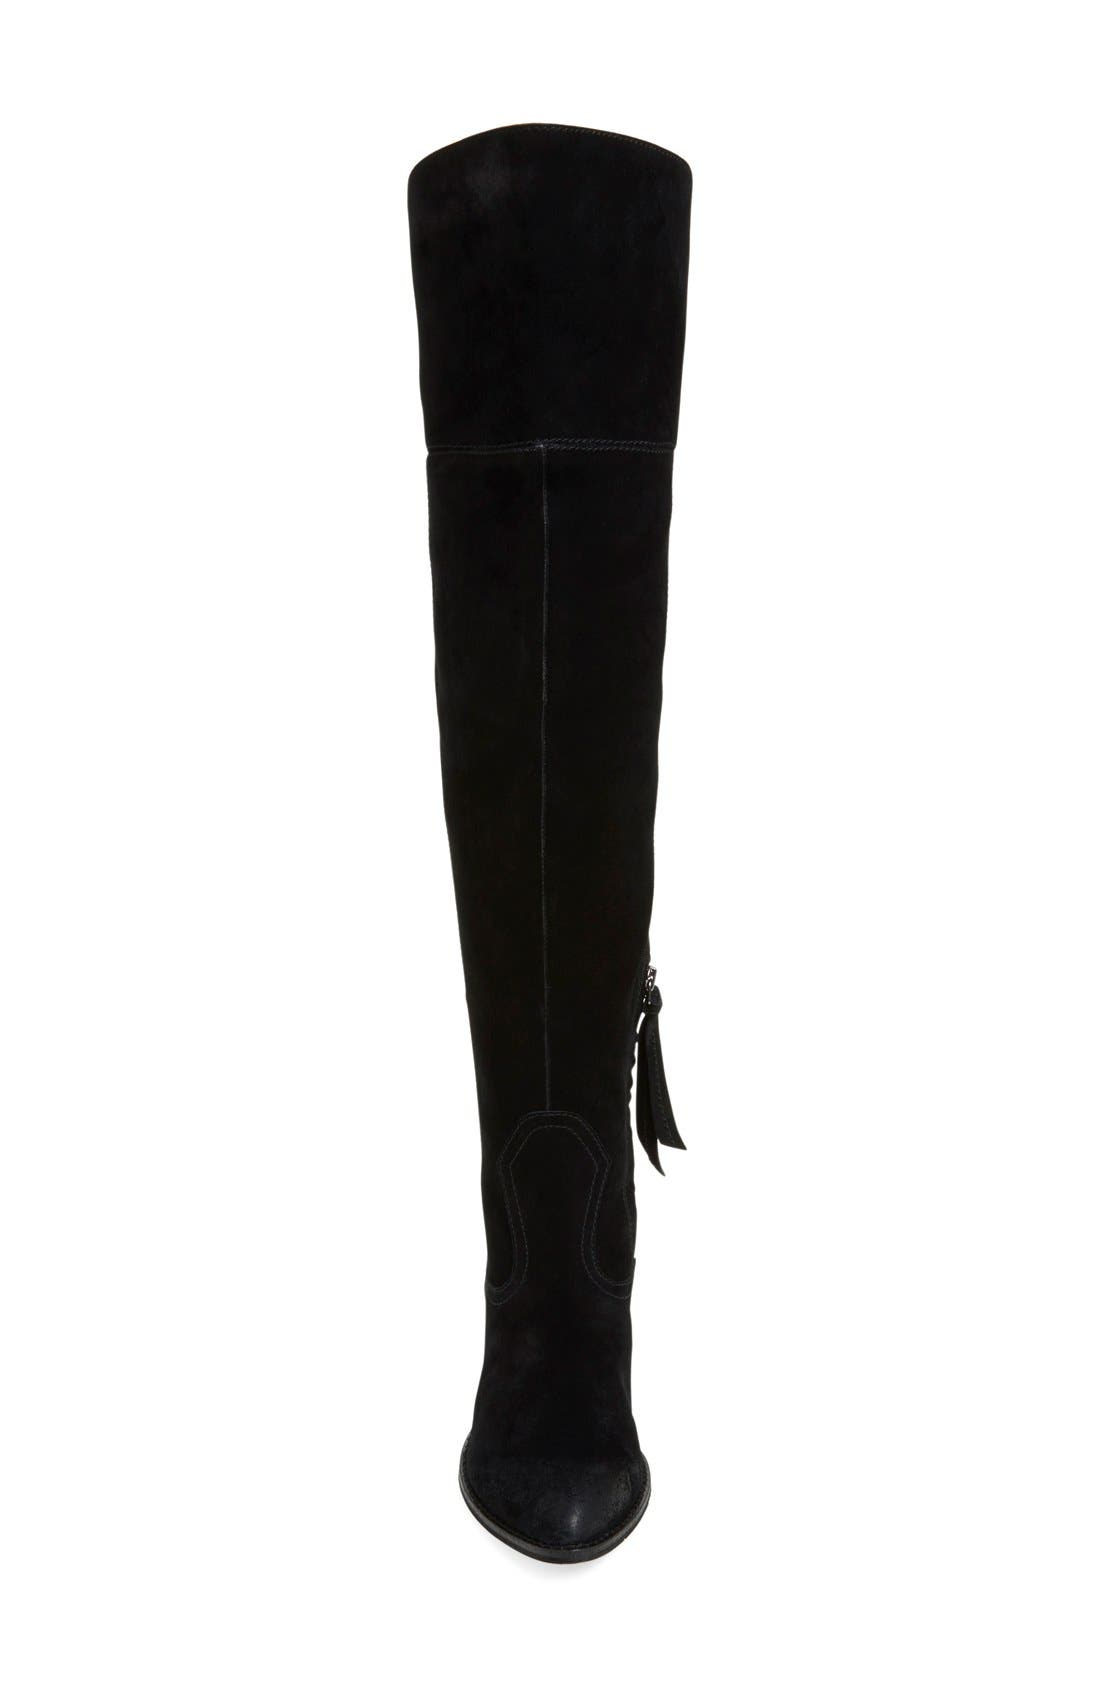 DOLCE VITA, 'Silas' Over the Knee Boot, Alternate thumbnail 2, color, 001